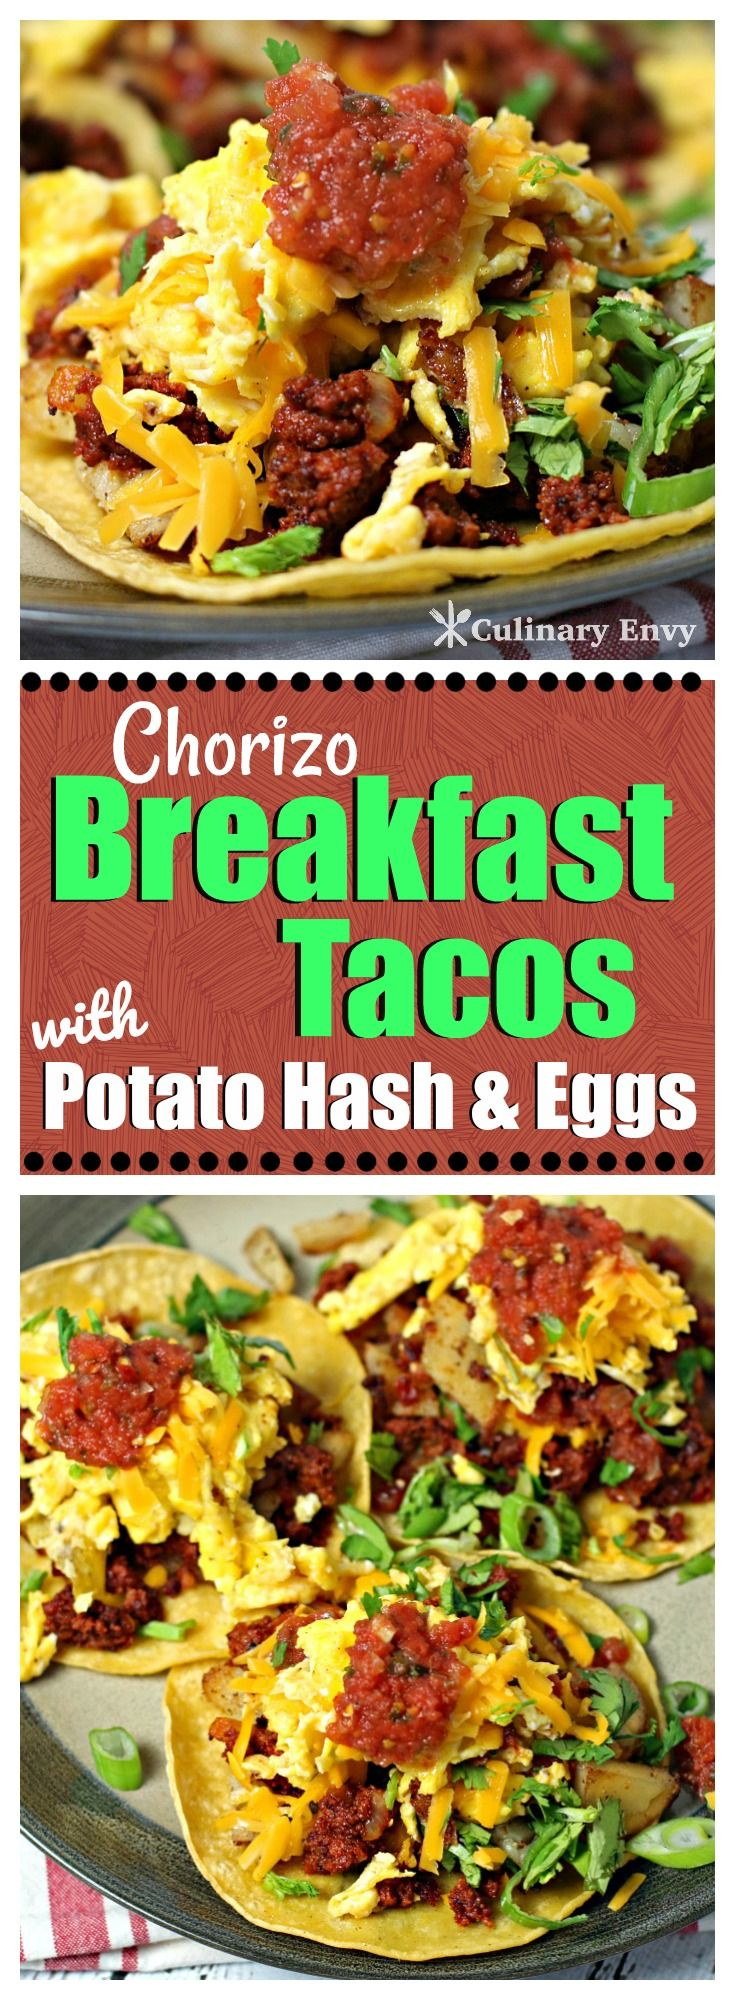 Chorizo Breakfast Tacos with Potato Hash and Eggs stuffed into a warm corn tortilla and topped with cheddar cheese and salsa makes an irresistible breakfast anytime of day! Click to read more!